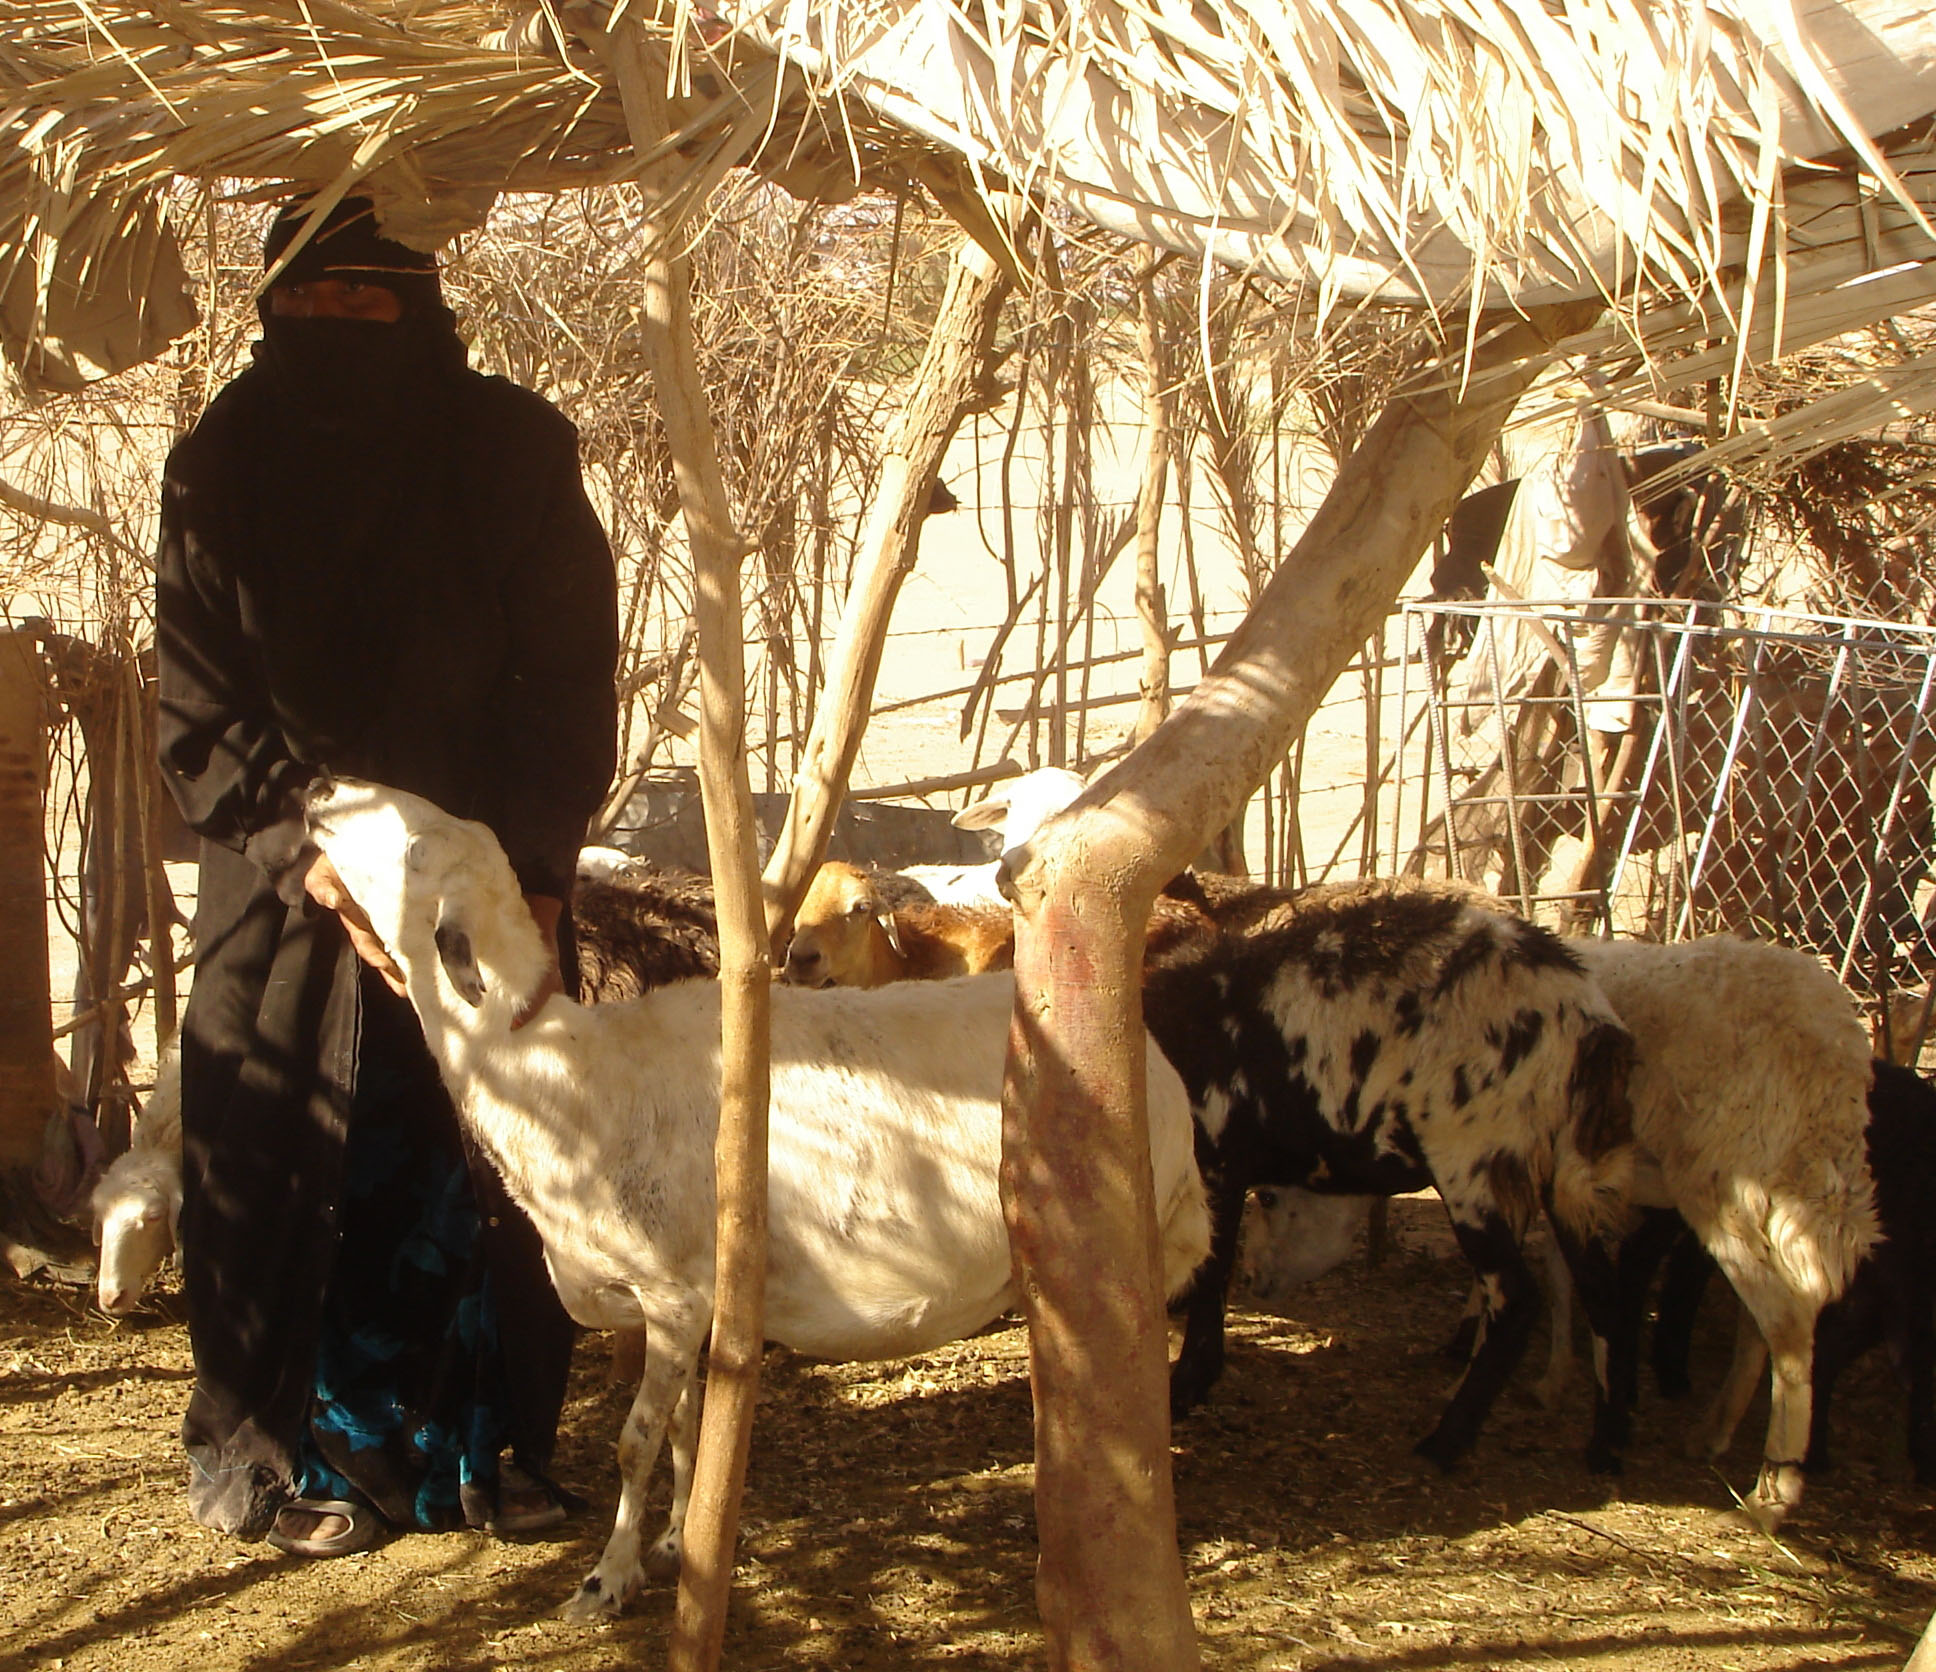 A participant in a USAID-coordinated training on basic animal health care, hygiene and husbandry, Aminah Ghalib Mofhel now earns